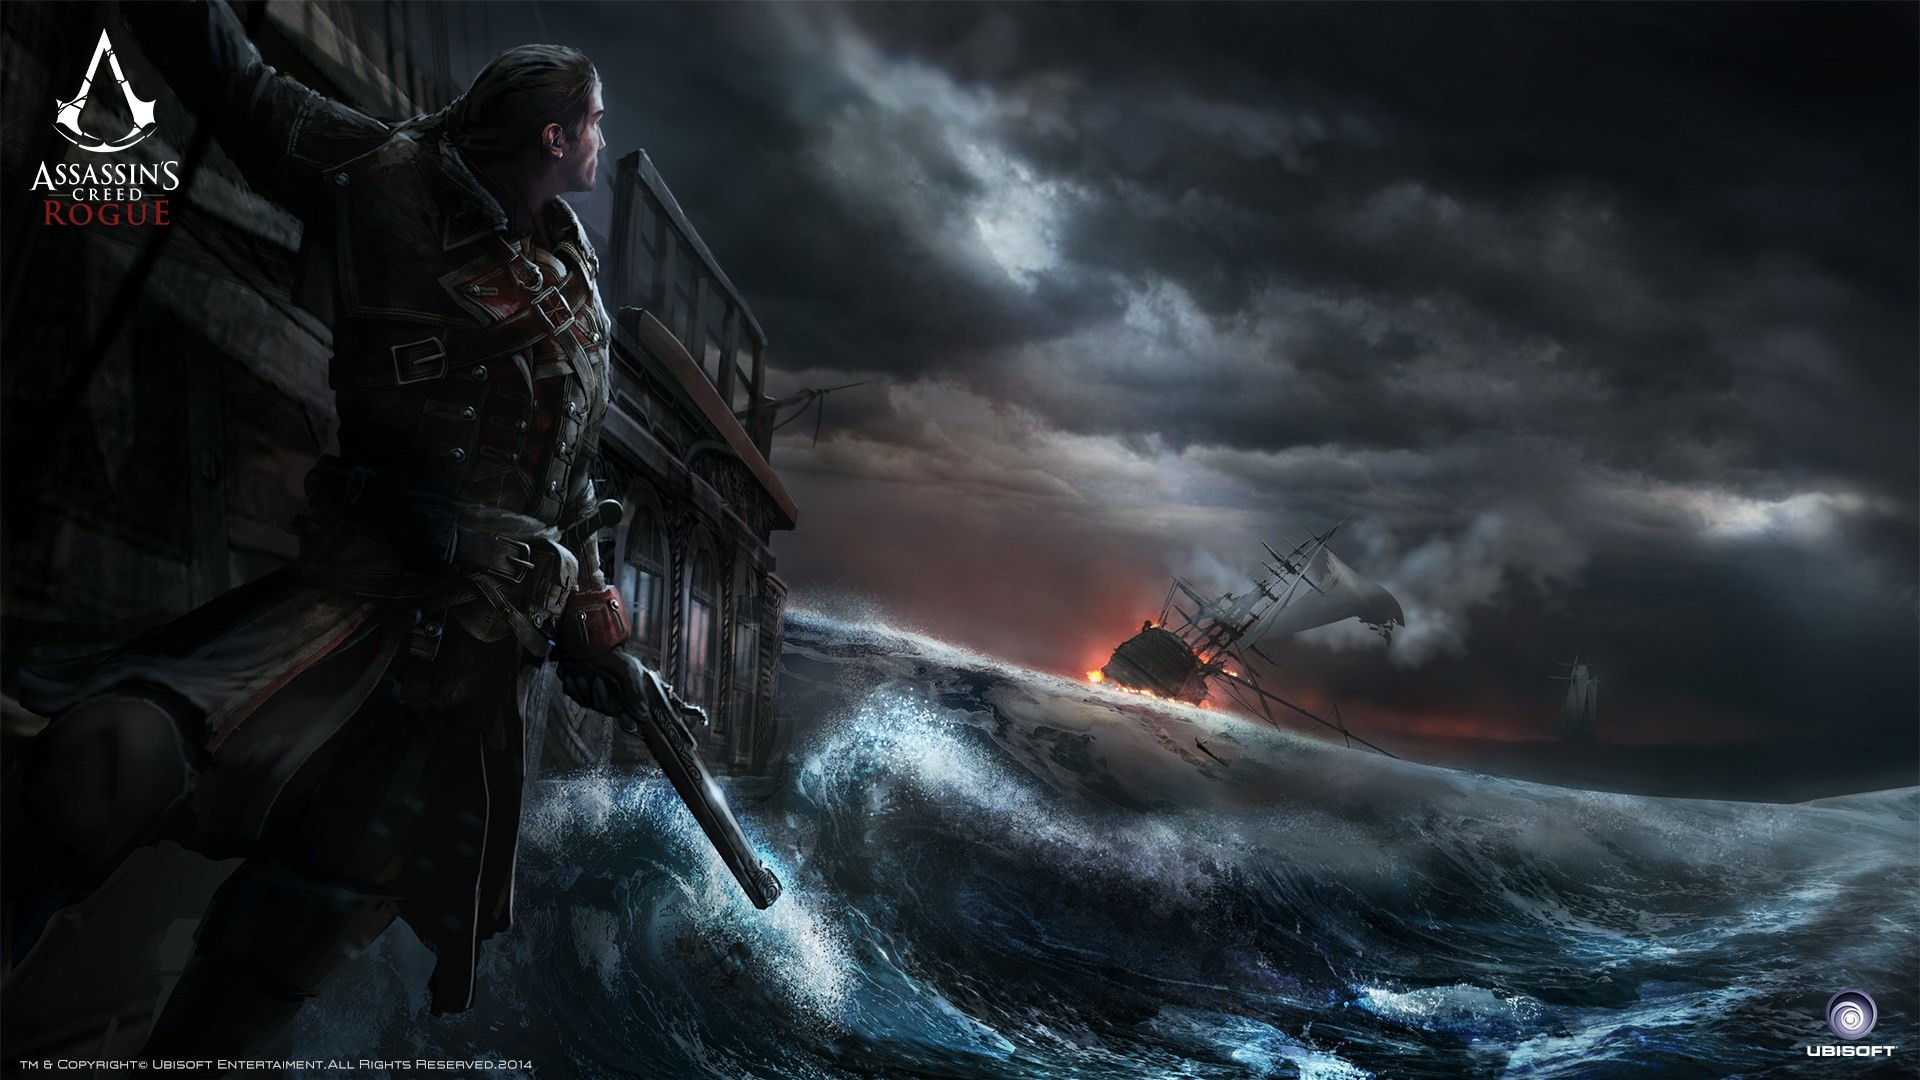 assassins creed rogue wallpaper 1080p 76 images